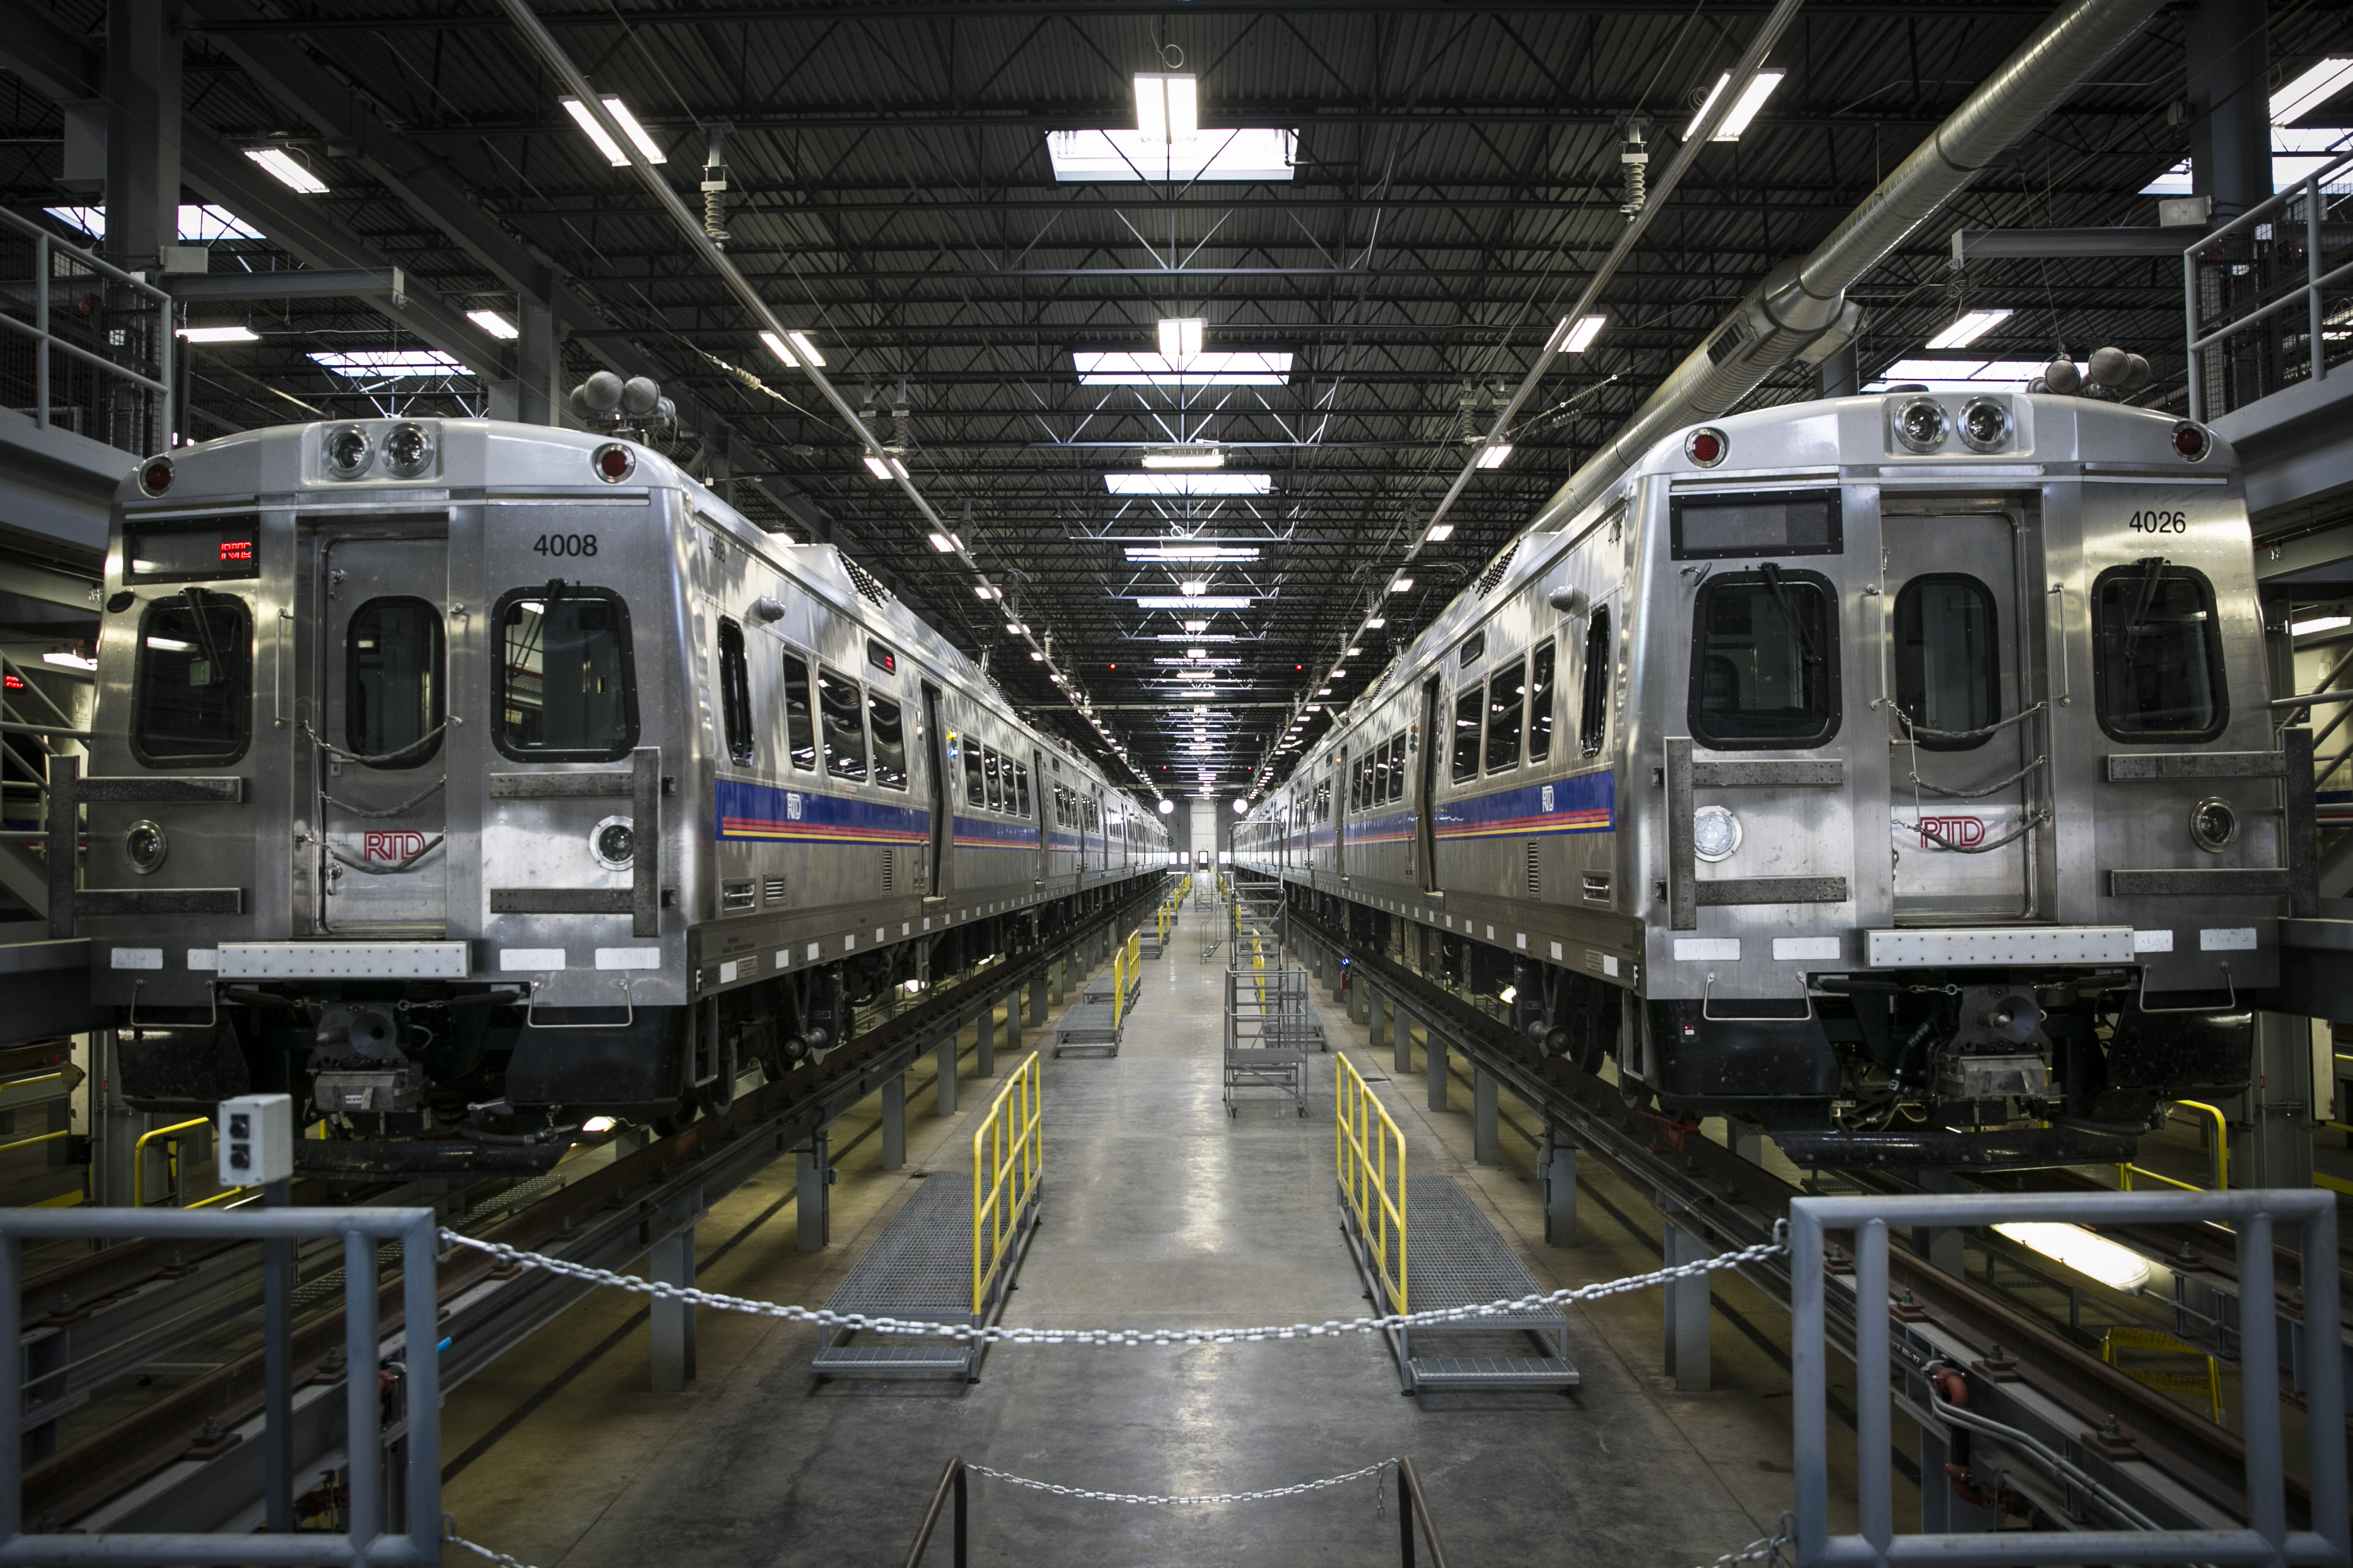 <p>Train cars inside the Denver Transit Partners maintenance facility in Denver, Colorado on Friday, June 29, 2018.</p>